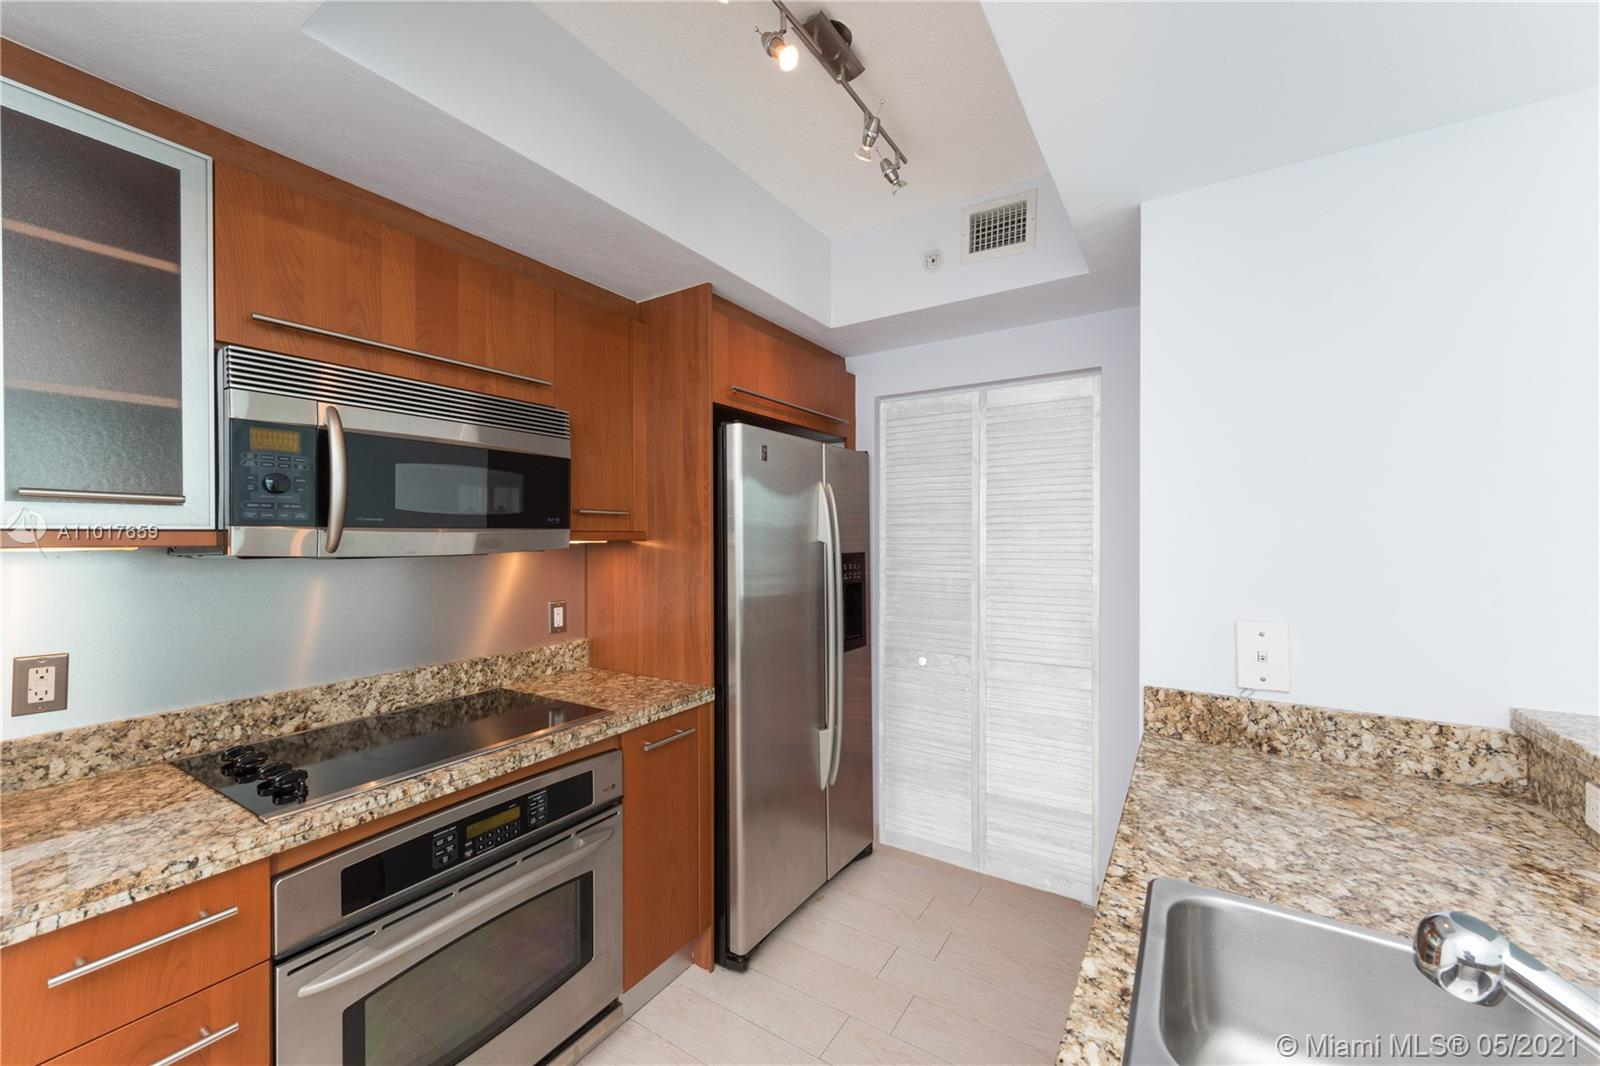 Located in the coveted South of fifth neighborhood, this unit features an open kitchen to the living room, granite counters, Italian fixtures, SS appliances, and a balcony overlooking the newly upgraded tropical landscaping and green wall. The Cosmopolitan is a full service building with 24/7 security, heated pool w/Jacuzzi, fitness center, & club-room. Walk 2 blocks to the beach, fine dining, & South Pointe Park. Building is financially secure.